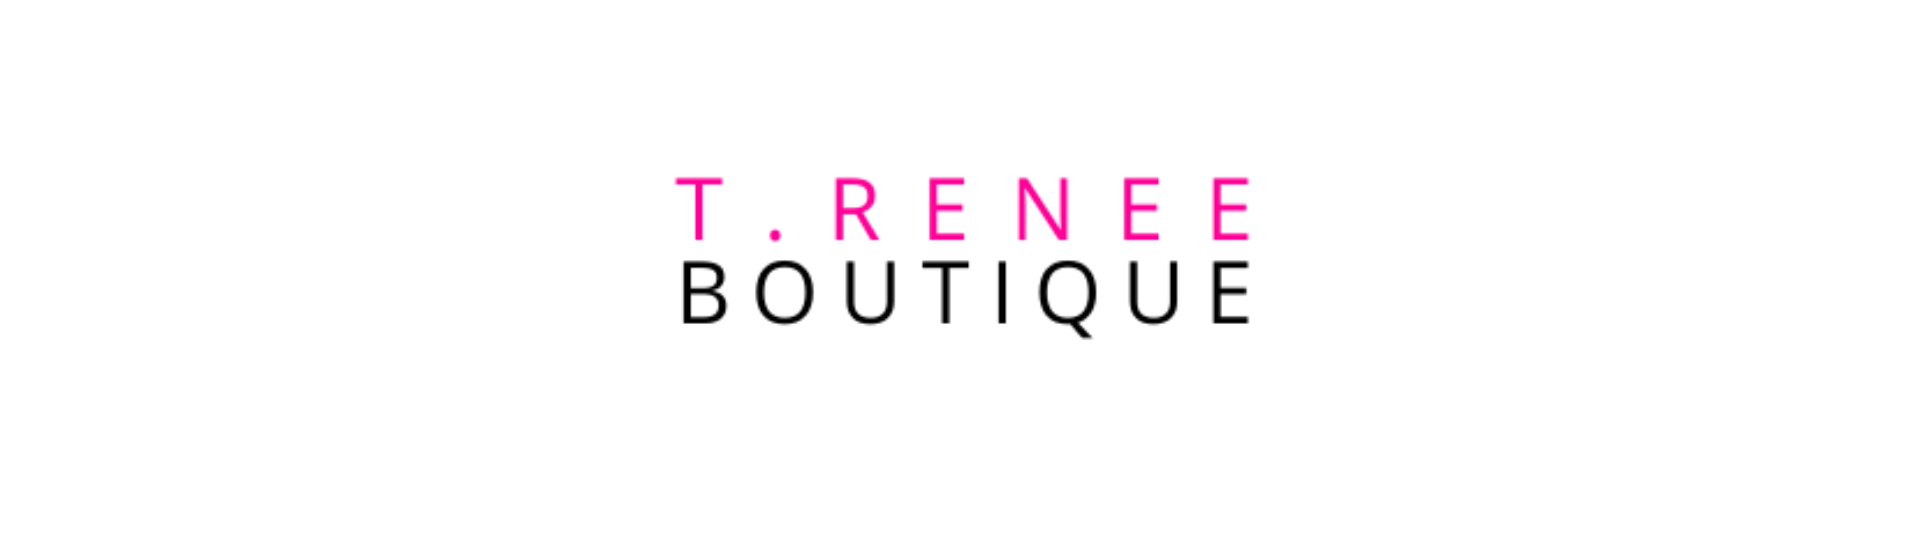 T. Renee Boutique